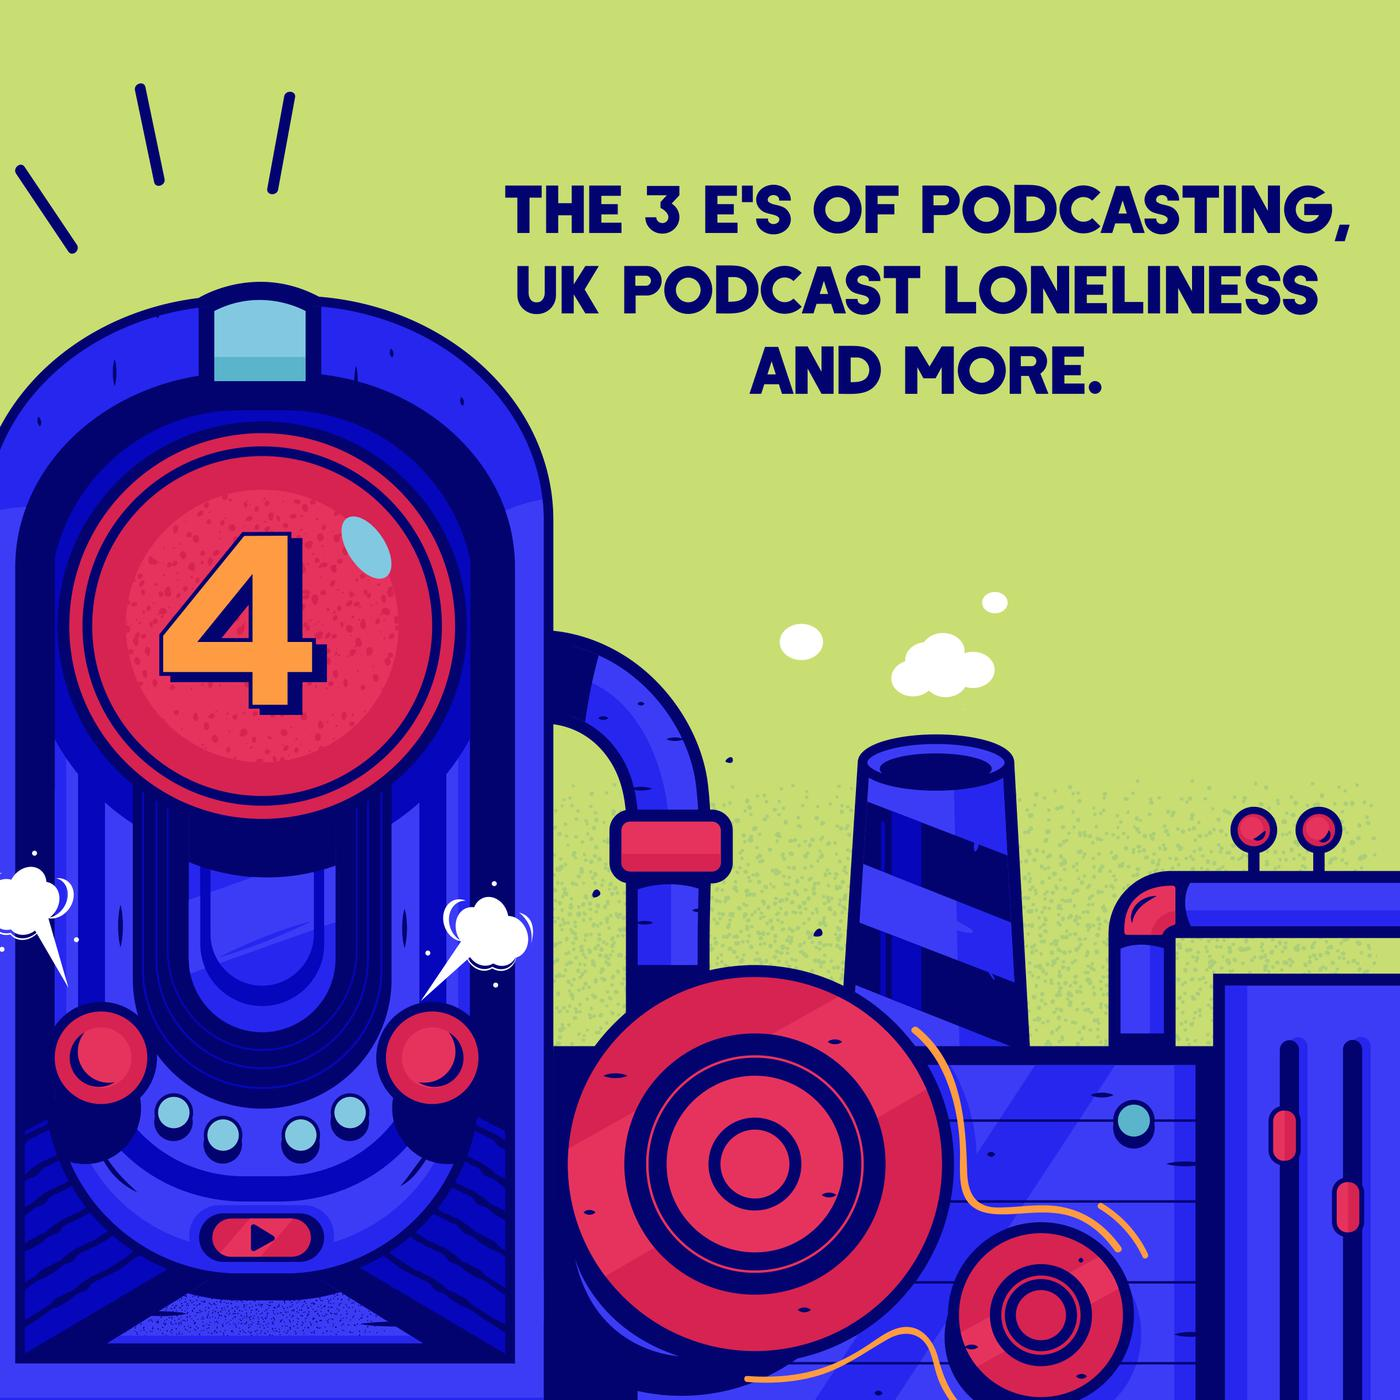 Episode 4 - (TWIP) - The 3 E's of Podcasting, UK Podcast Loneliness, and More.